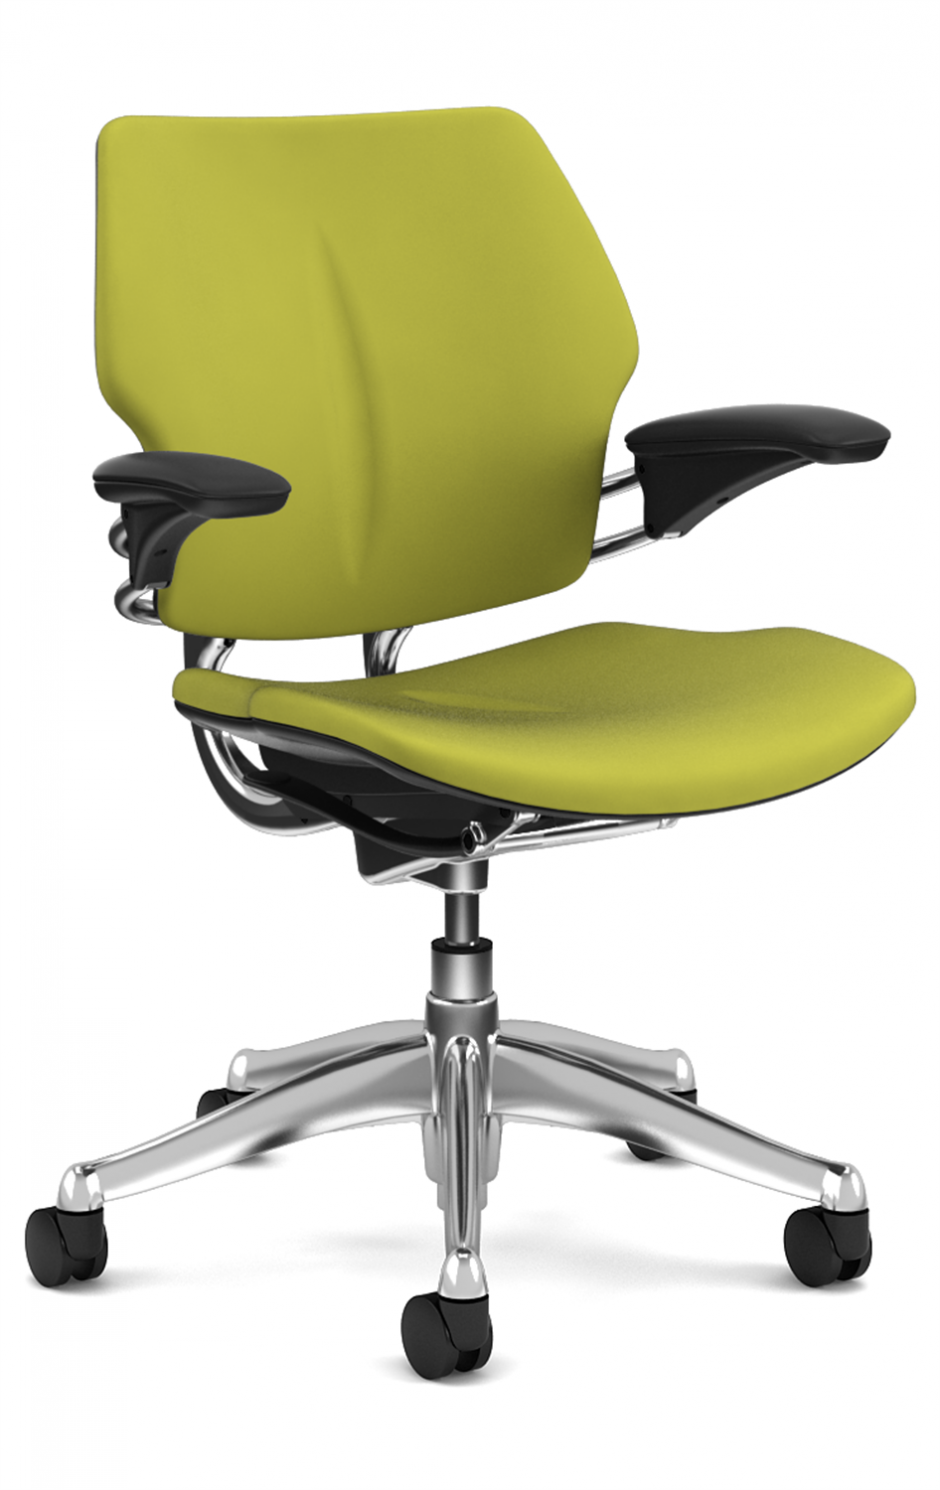 Freedom Headrest | Ergonomic Chair With Headrest | Humanscale Freedom Chair